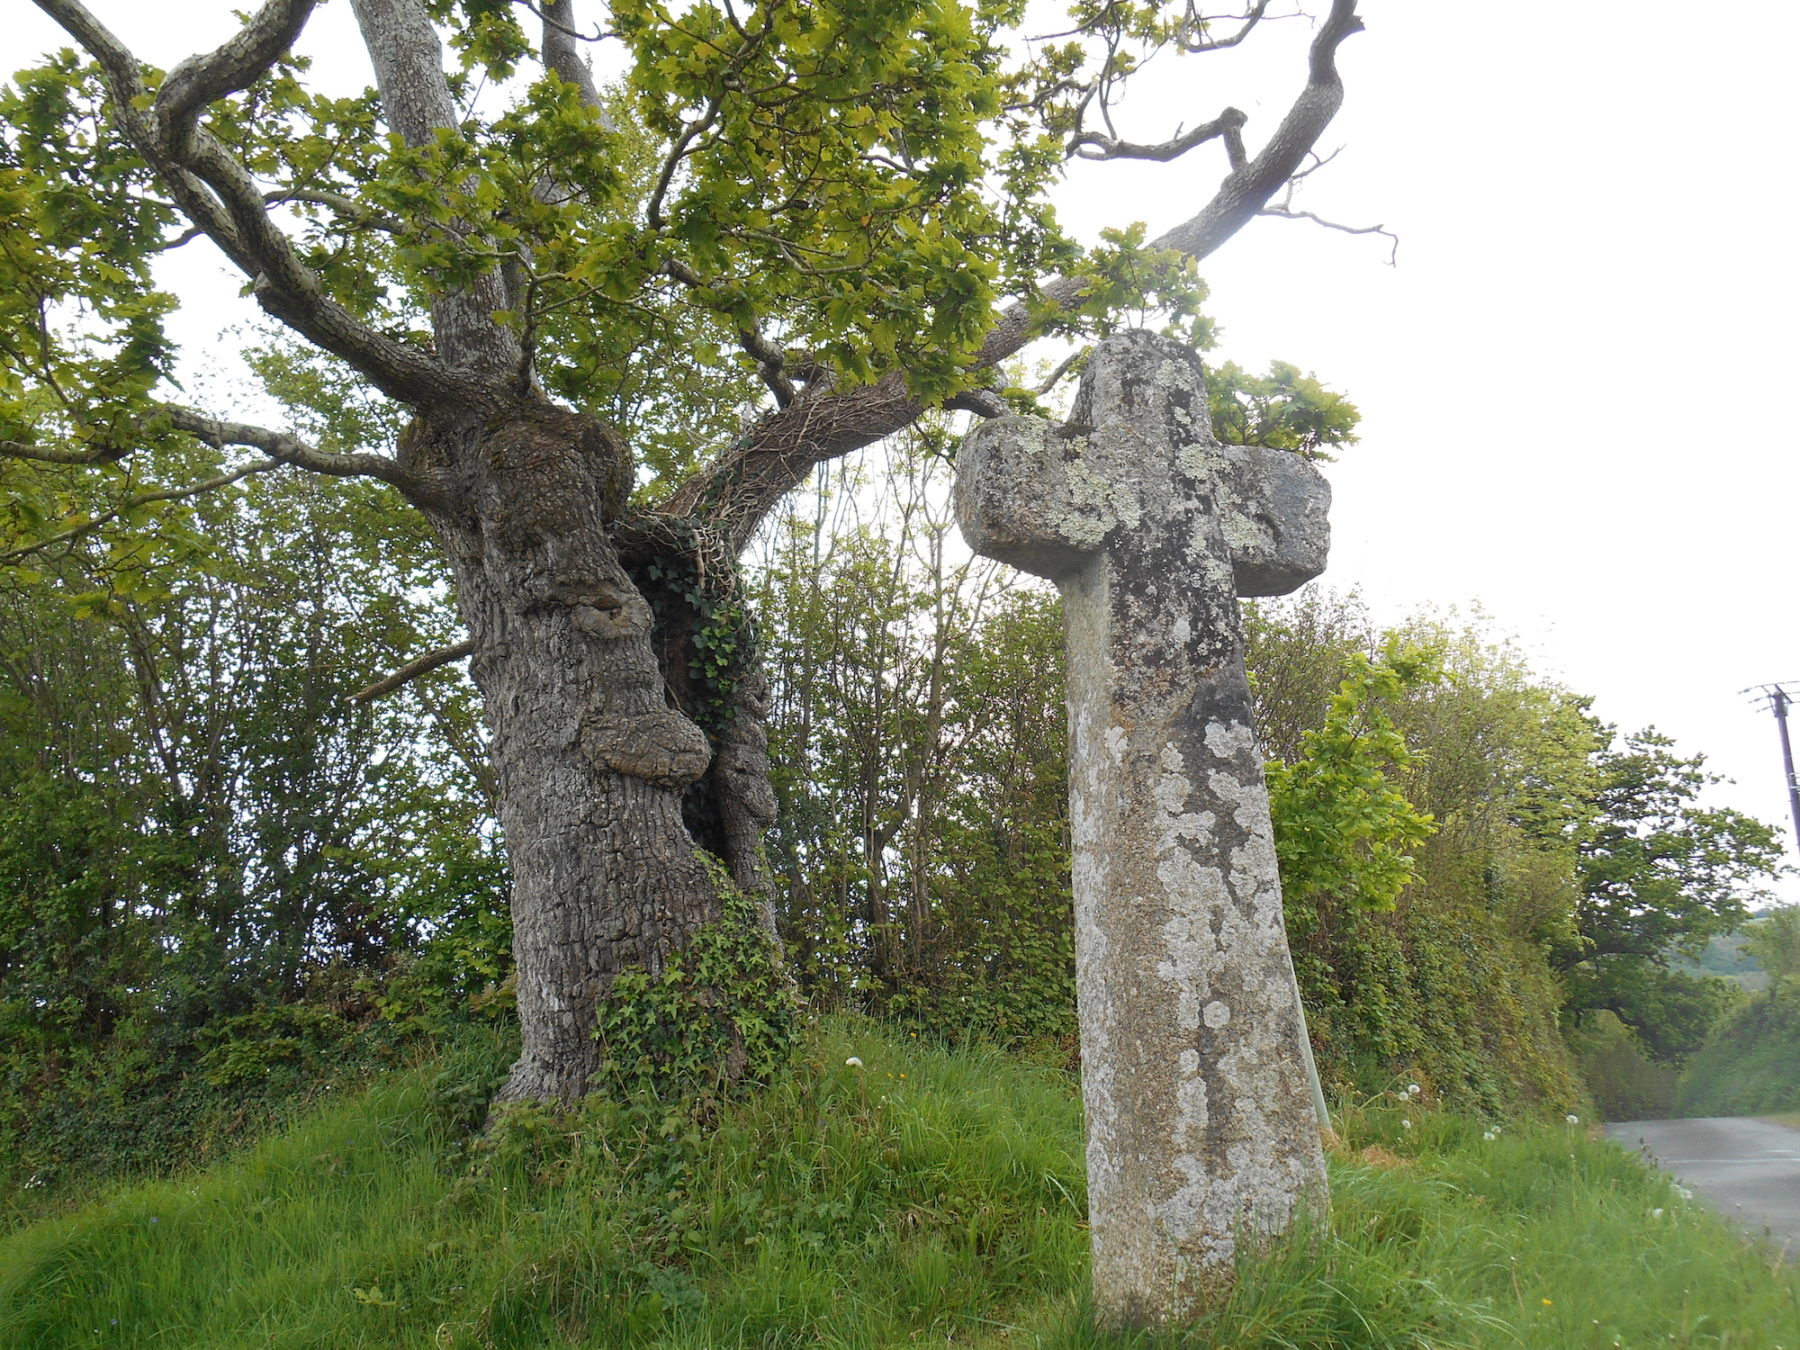 An ancient looking tree with a hole in its centre stands aside a stone cross